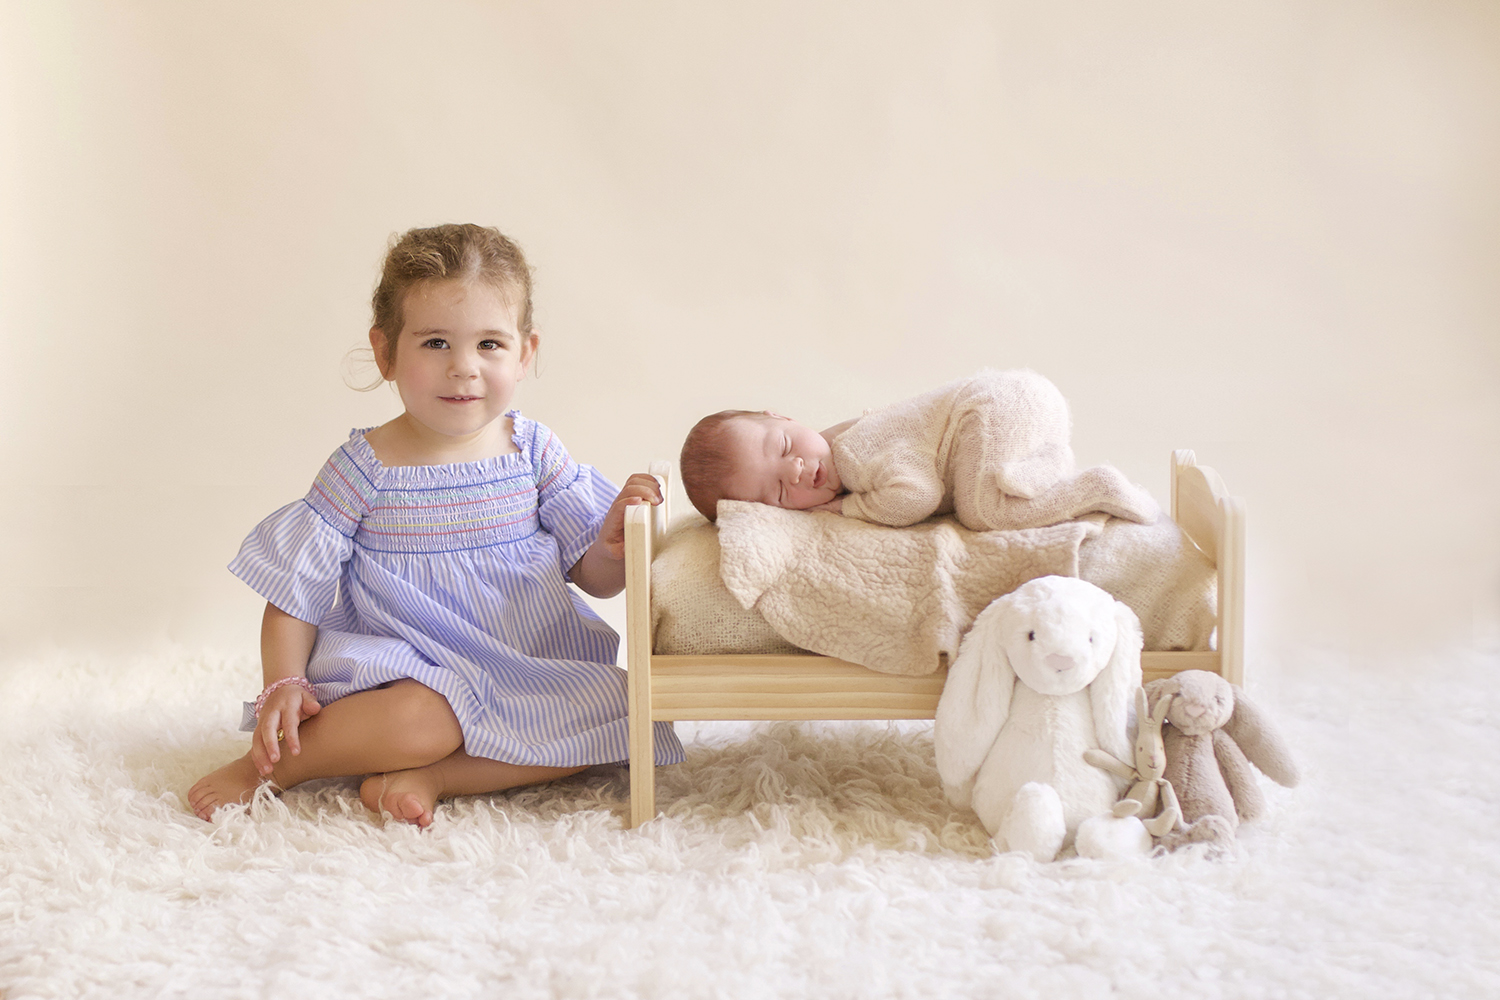 Newborn baby boy in cream romper sleeping on wooden bed with cream blankets and cream fur on the ground with soft toy bunnies and sibling big sister in blue dress